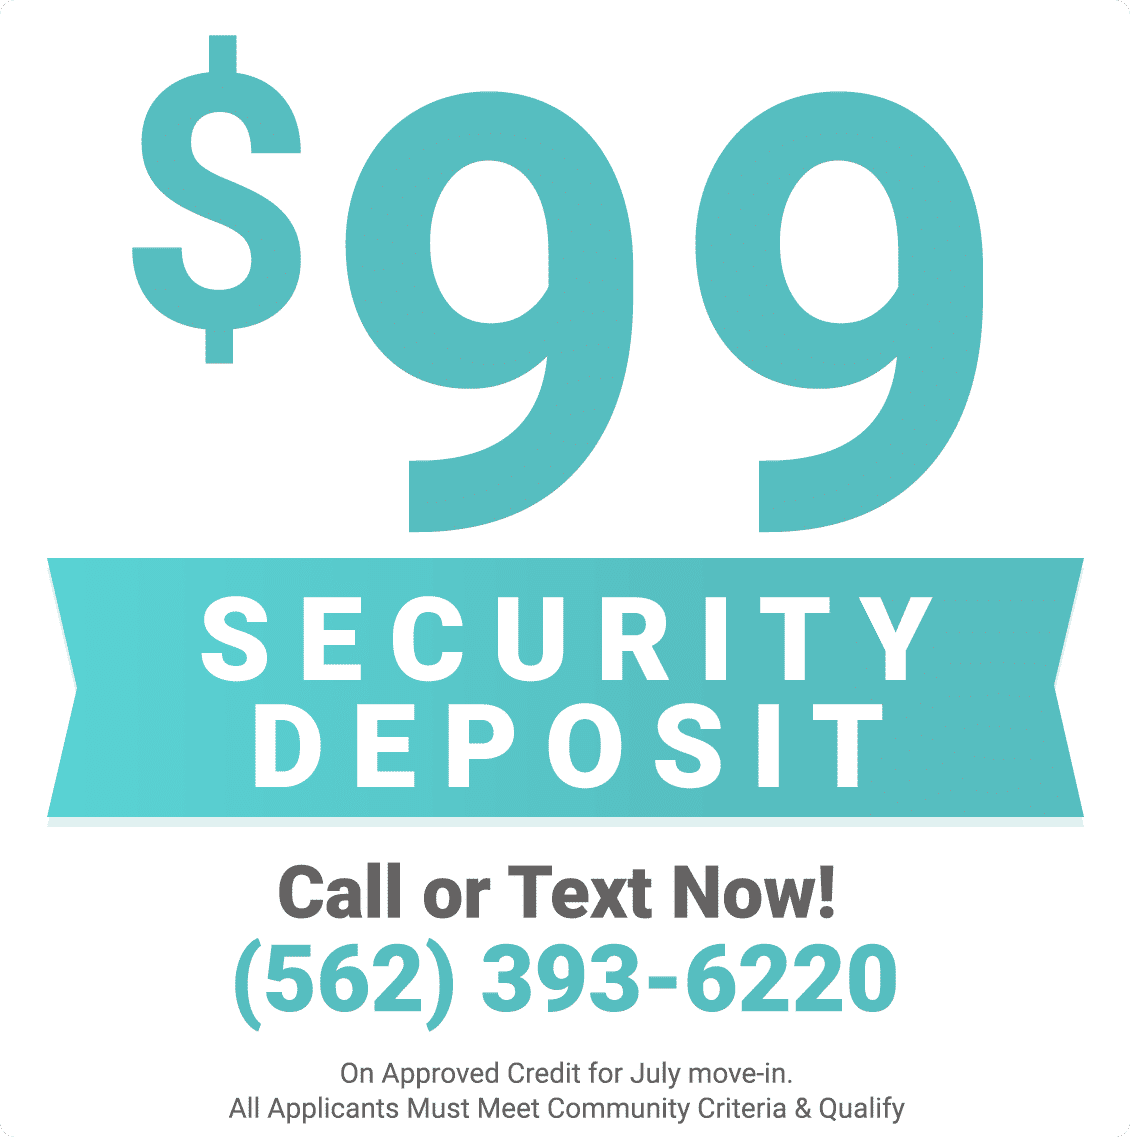 $99 security deposit on approved credit for July move-in.